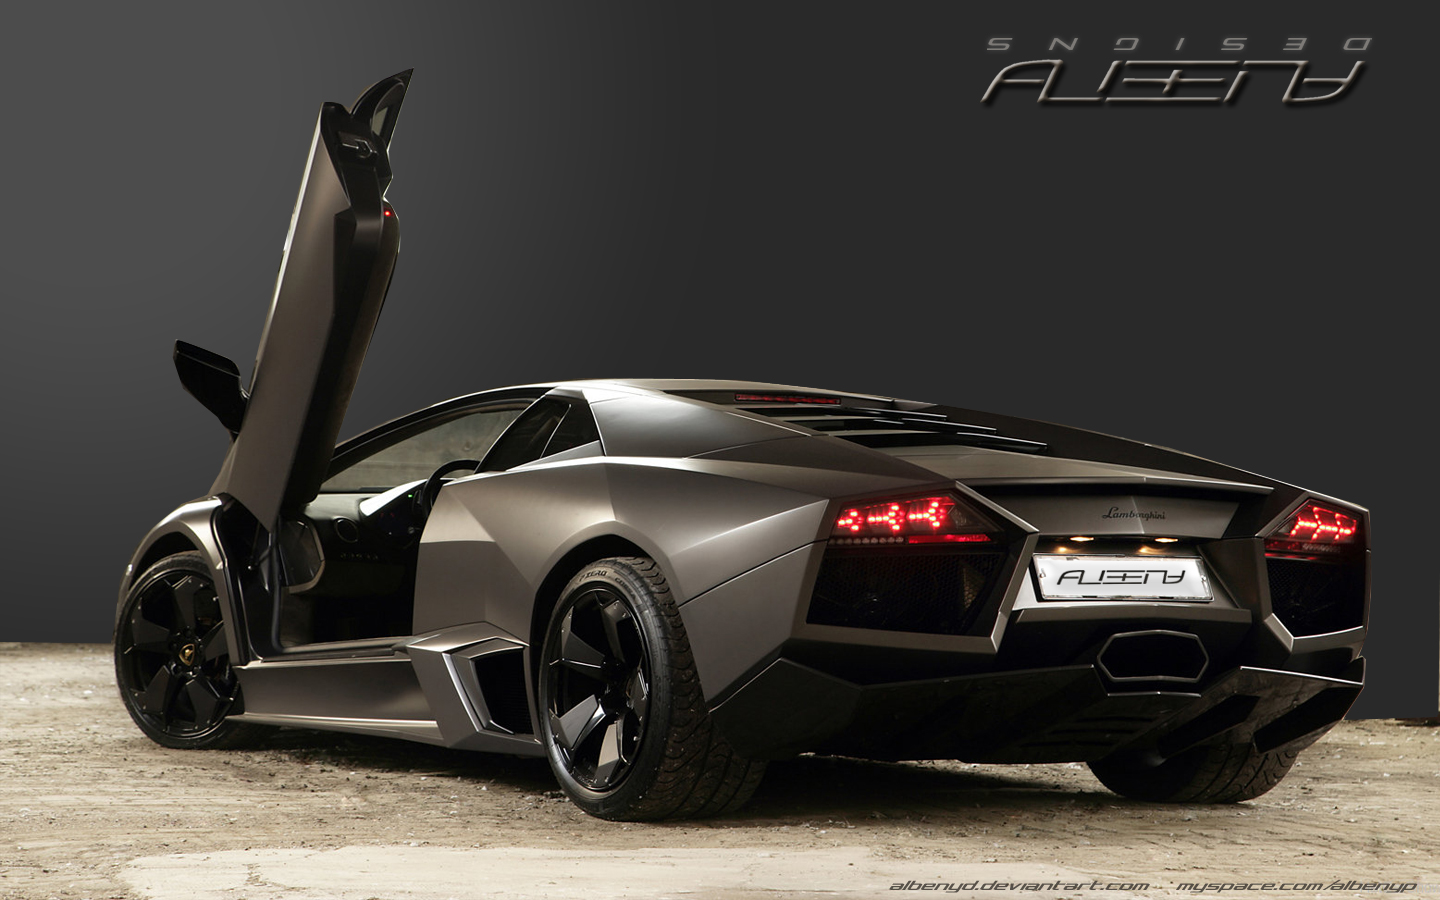 Lamborghini reventon wallpaper - Italian car maker Lamborghini reportedly made just 21 originals of that model, with only two distributed in Asia.